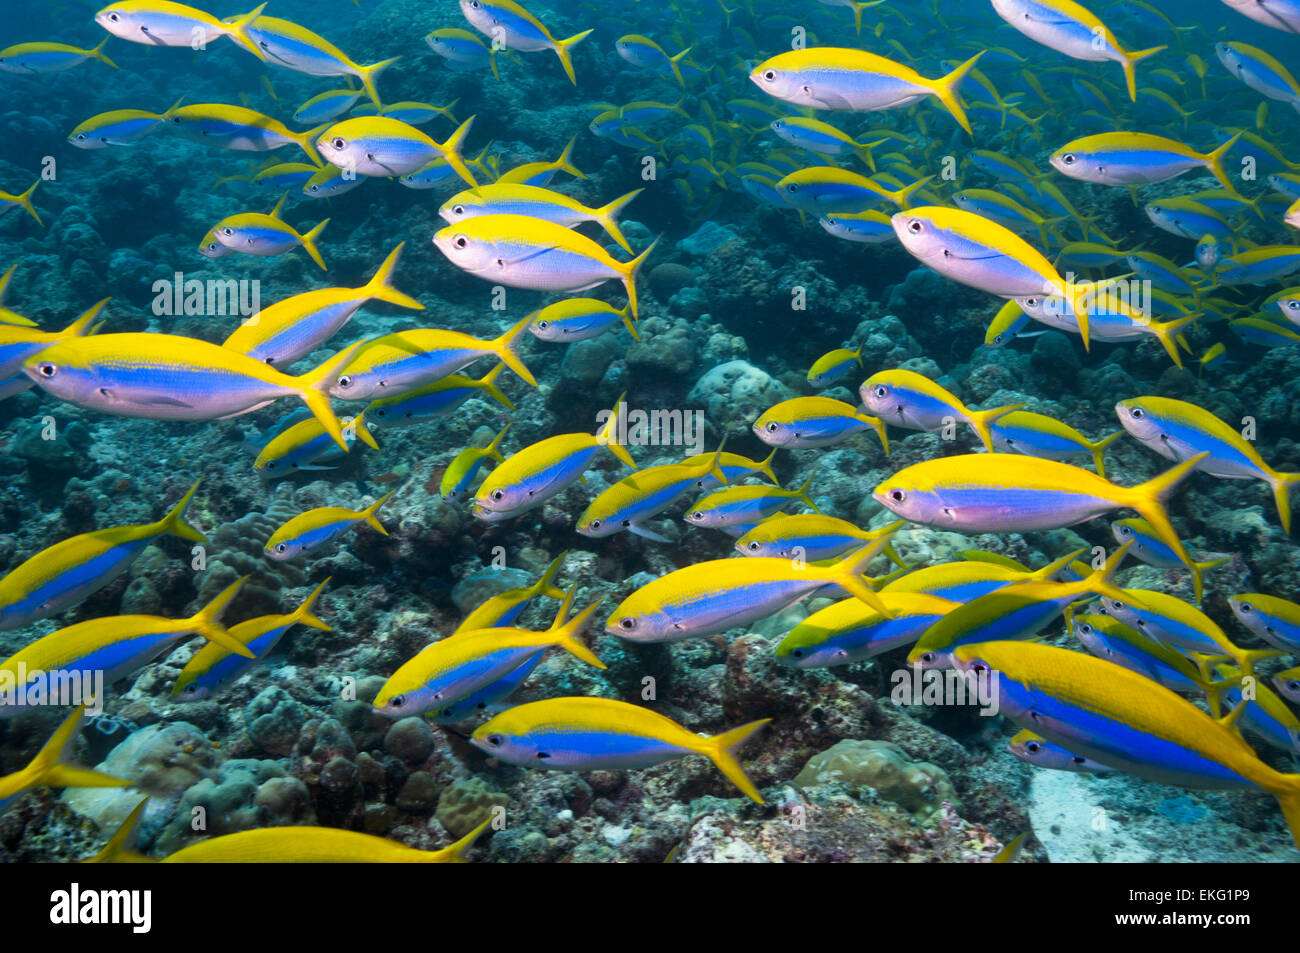 Yellowback fusilier [Caesio xanthonota] school over coral reef.  Maldives. - Stock Image